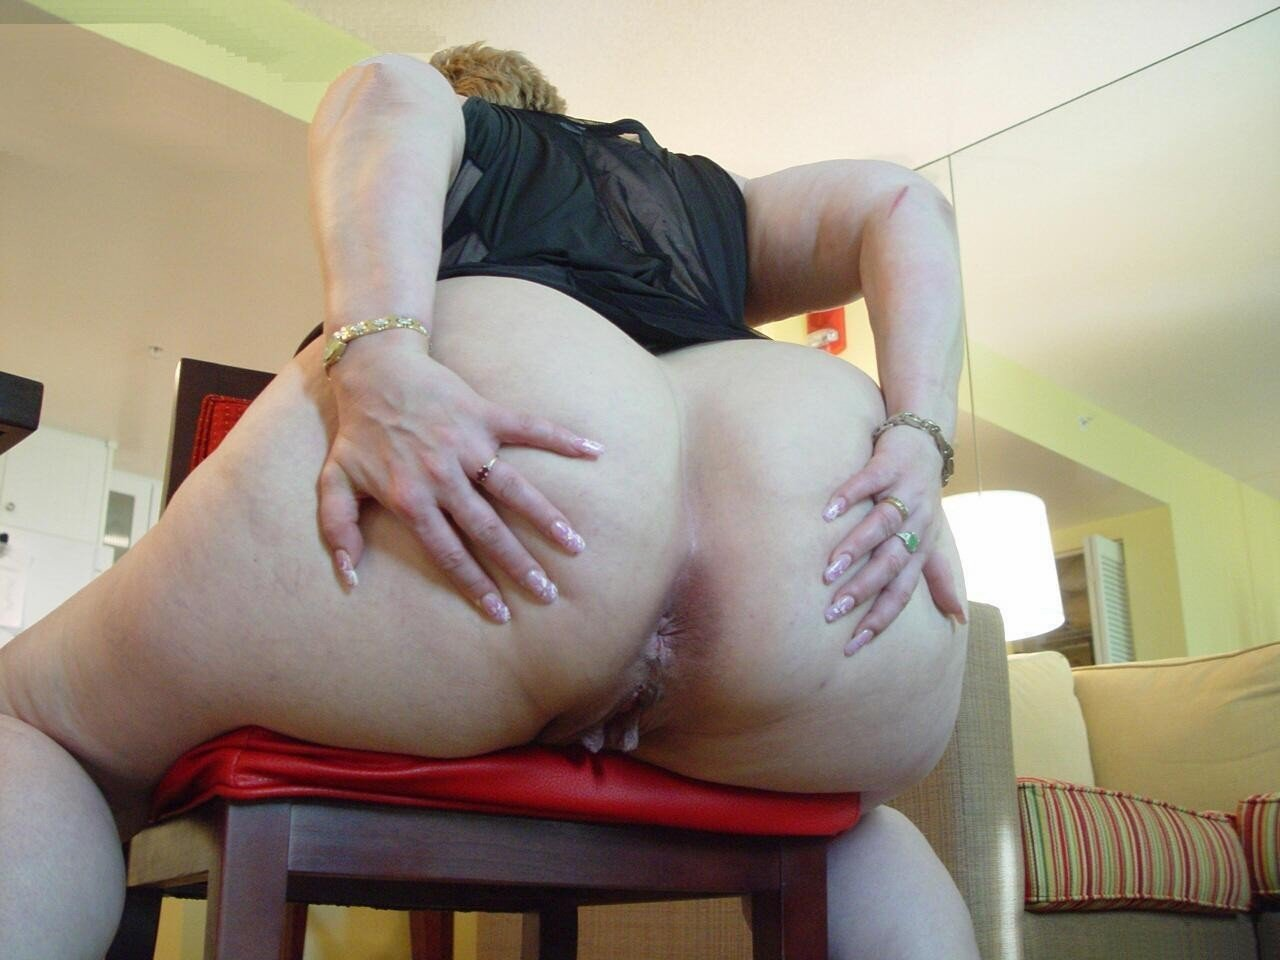 Pawg Pussy Porn